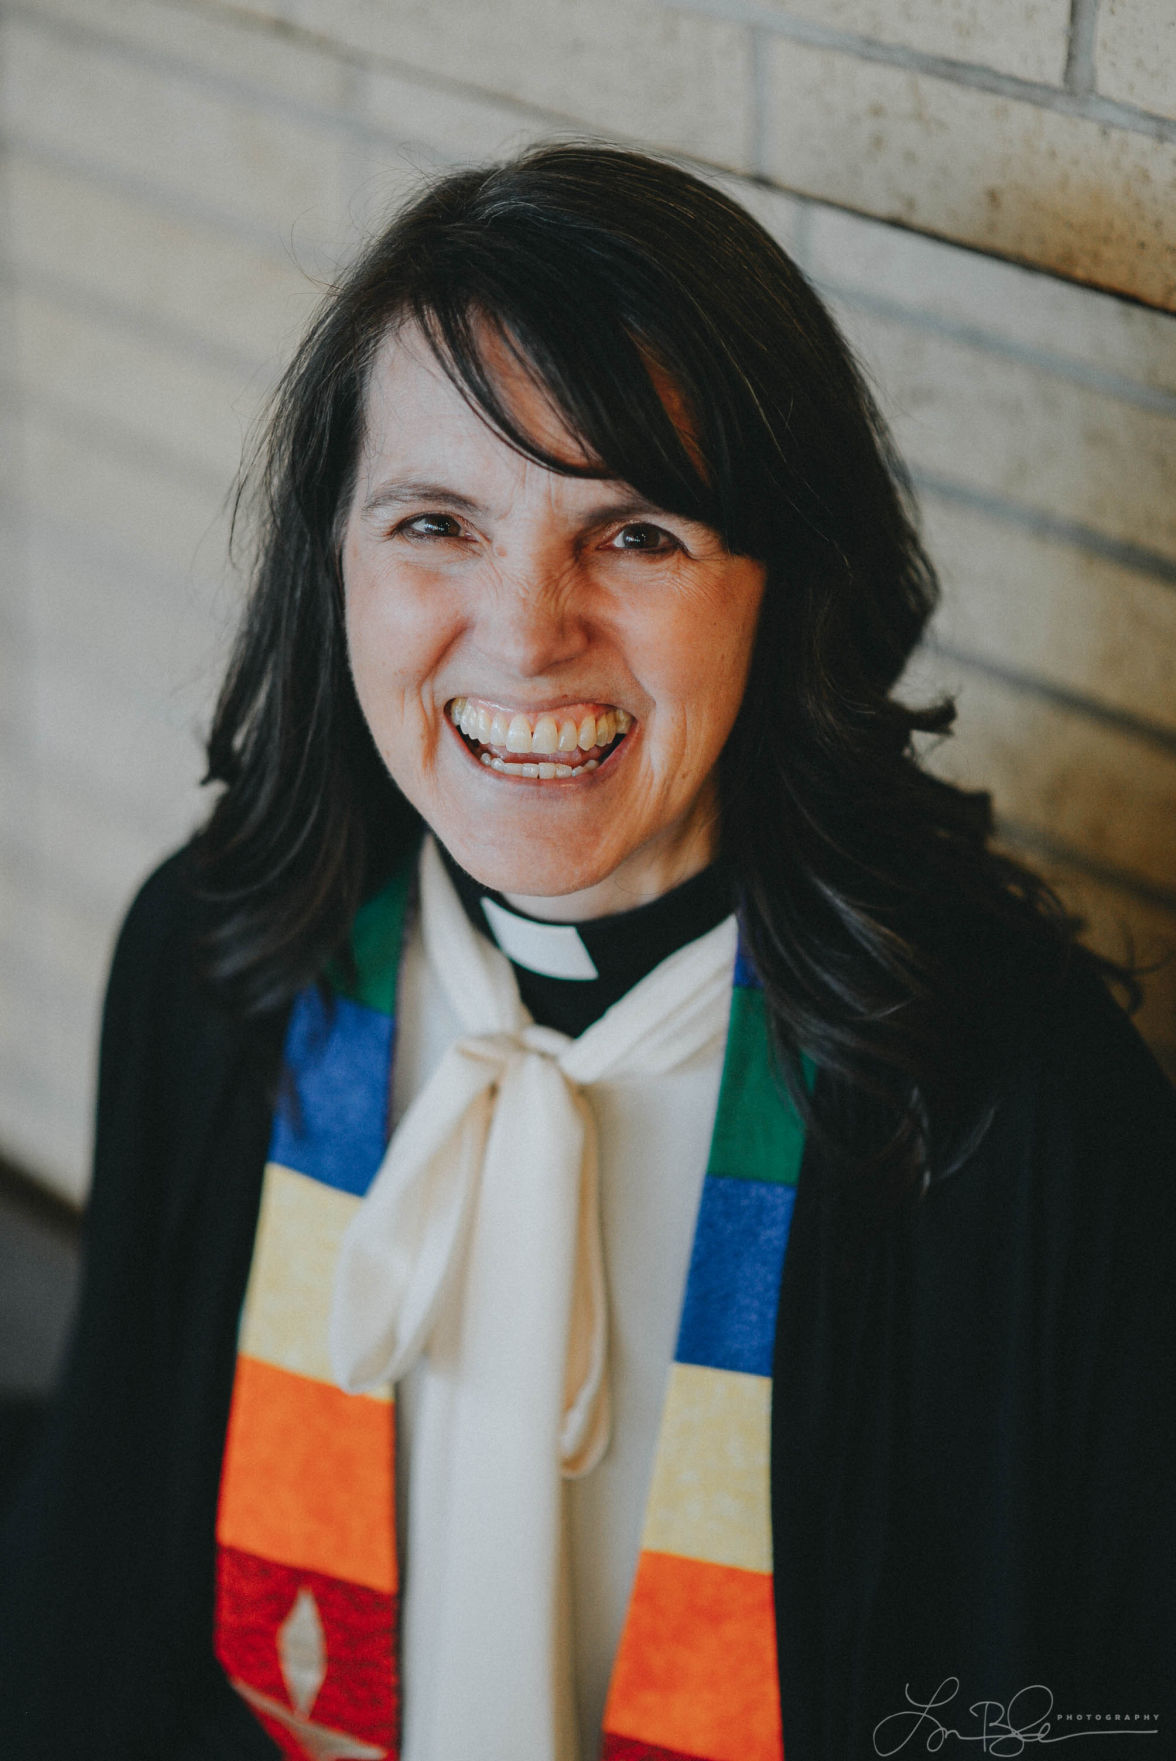 The Rev. Karen Van Fossan